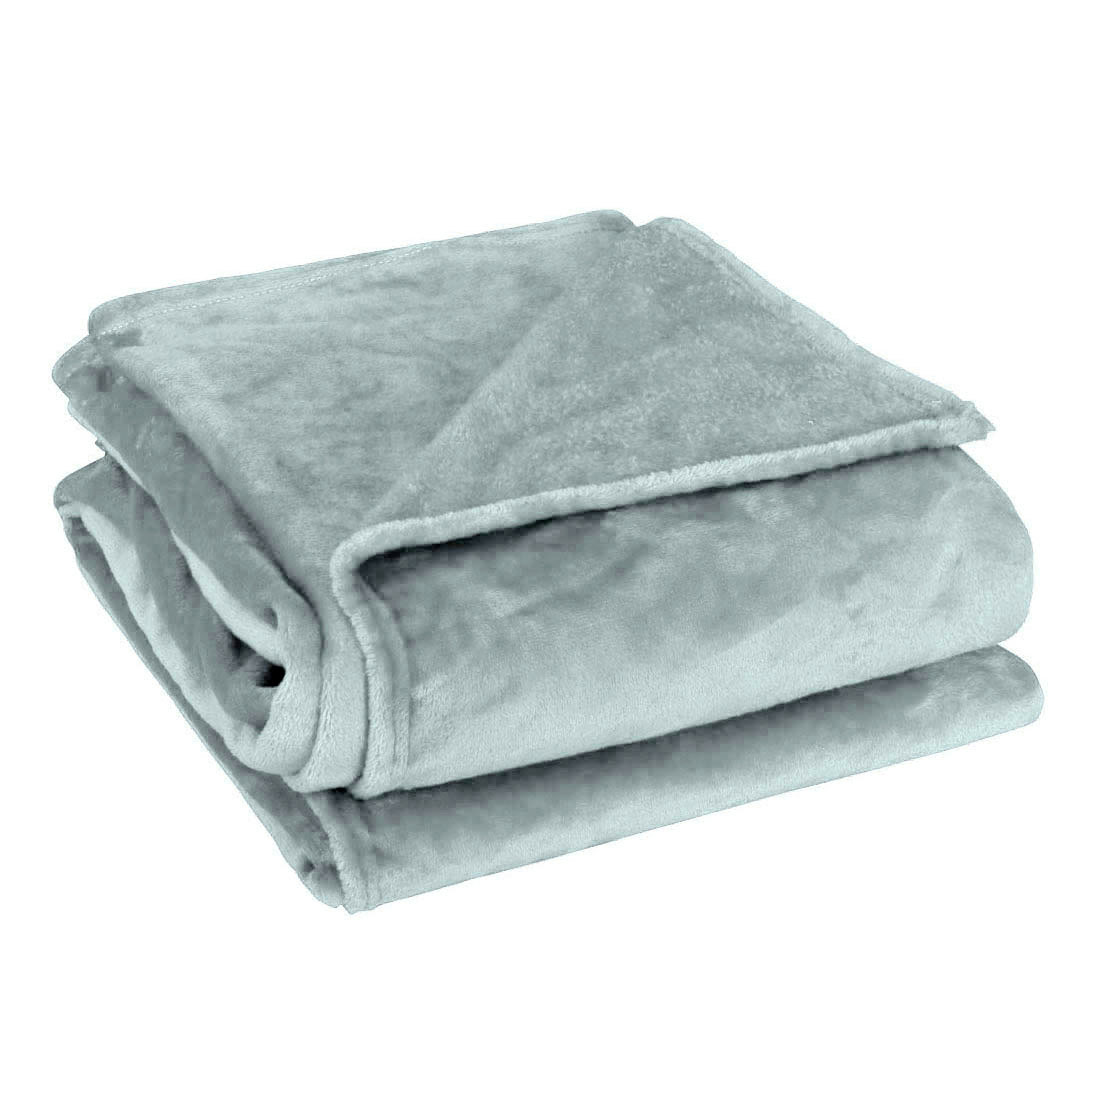 Home Bedroom Warm Soft Microplush Fleece Throw Blanket for Beds Sofa Couch